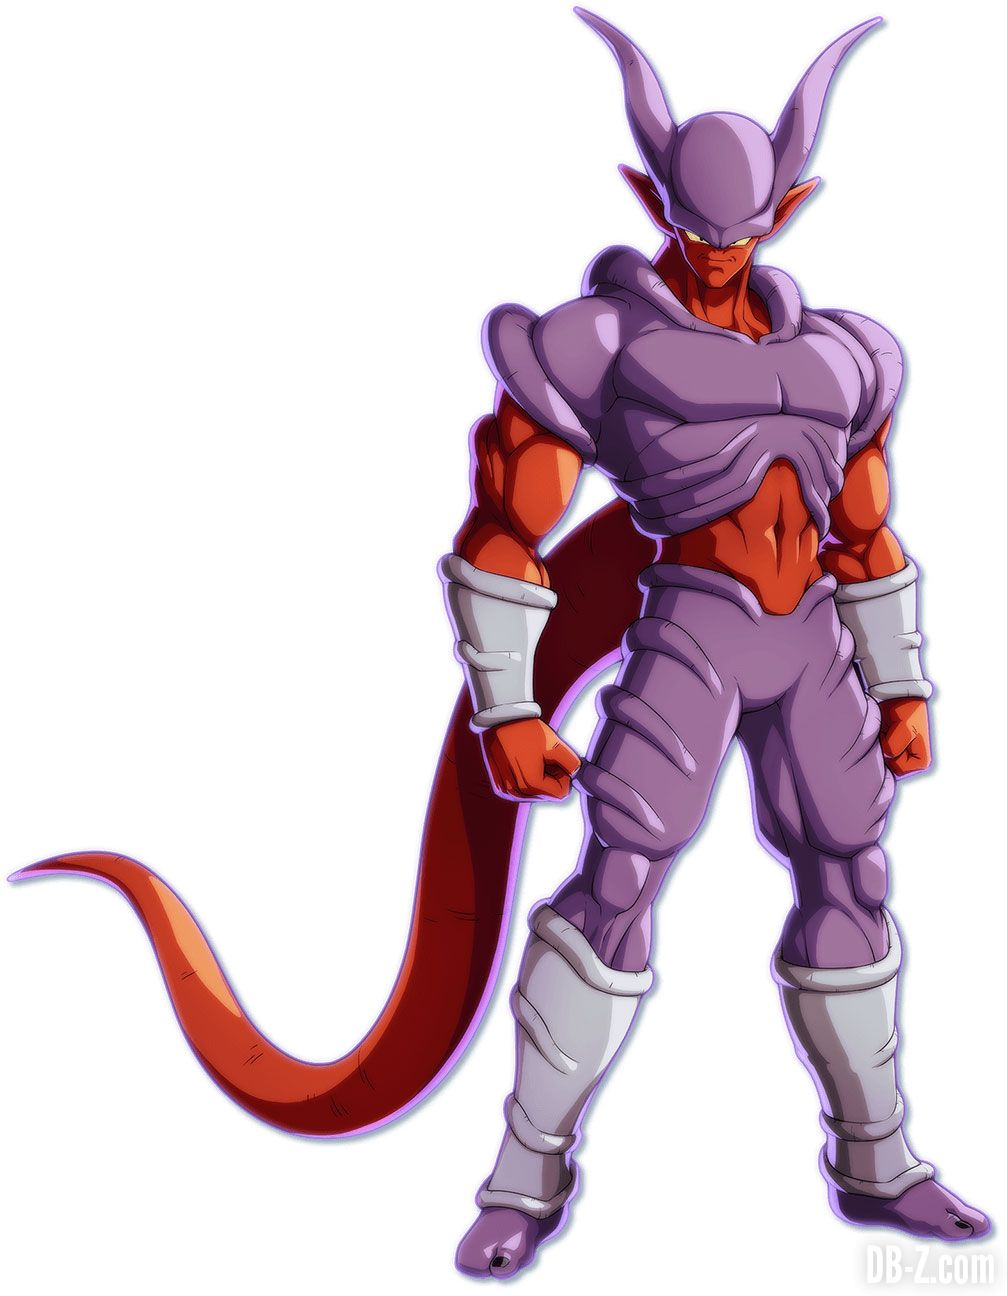 Janemba Dragon Ball FighterZ 1